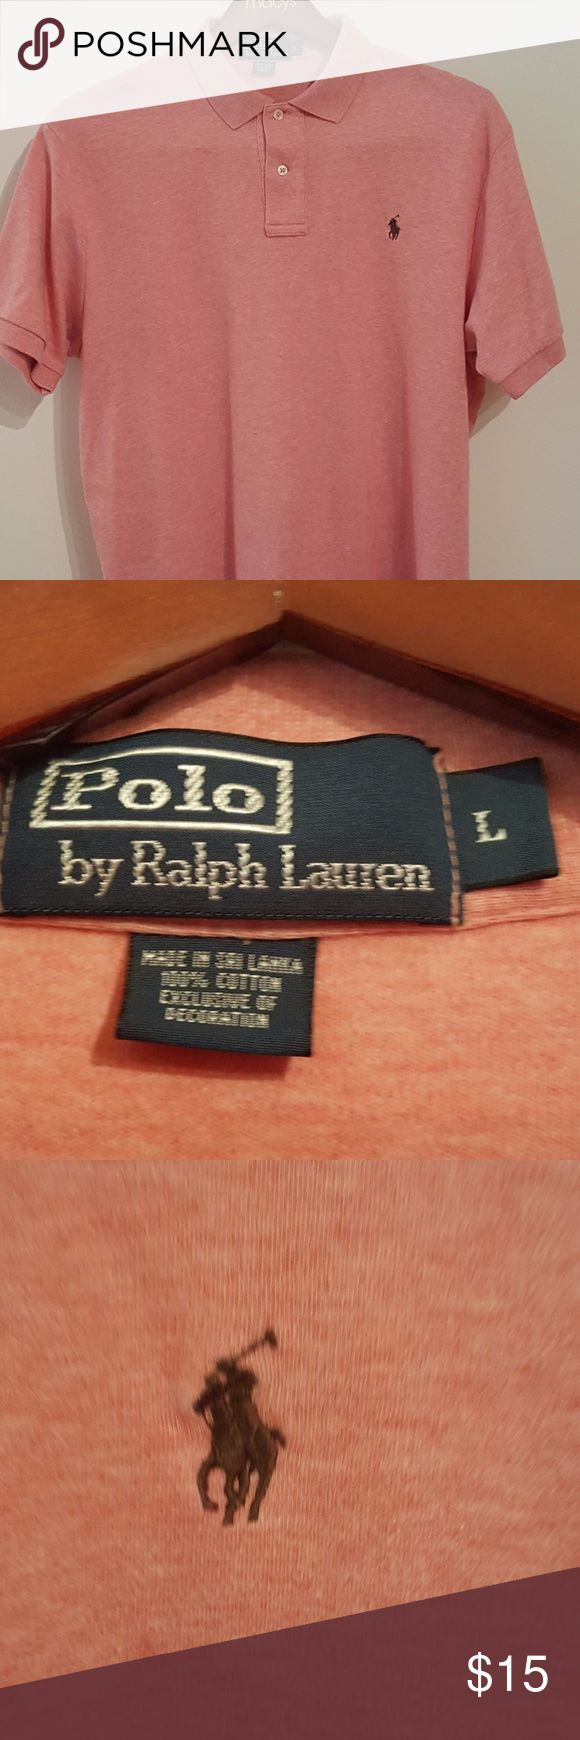 Men Polo Ralph Lauren SOFT TOUCH Interlock Polo Sh Men Polo Ralph Lauren SOFT TOUCH Interlock Polo Shirt L STANDARD FIT  Brown Pony Emblem at the left chest Classic Fit: Roomiest silhouette.  Ribbed Polo collar. Two-button placket. Short sleeves with ribbed armbands. Tennis tail. 100% cotton. Machine washable. Imported. Polo by Ralph Lauren Shirts Polos